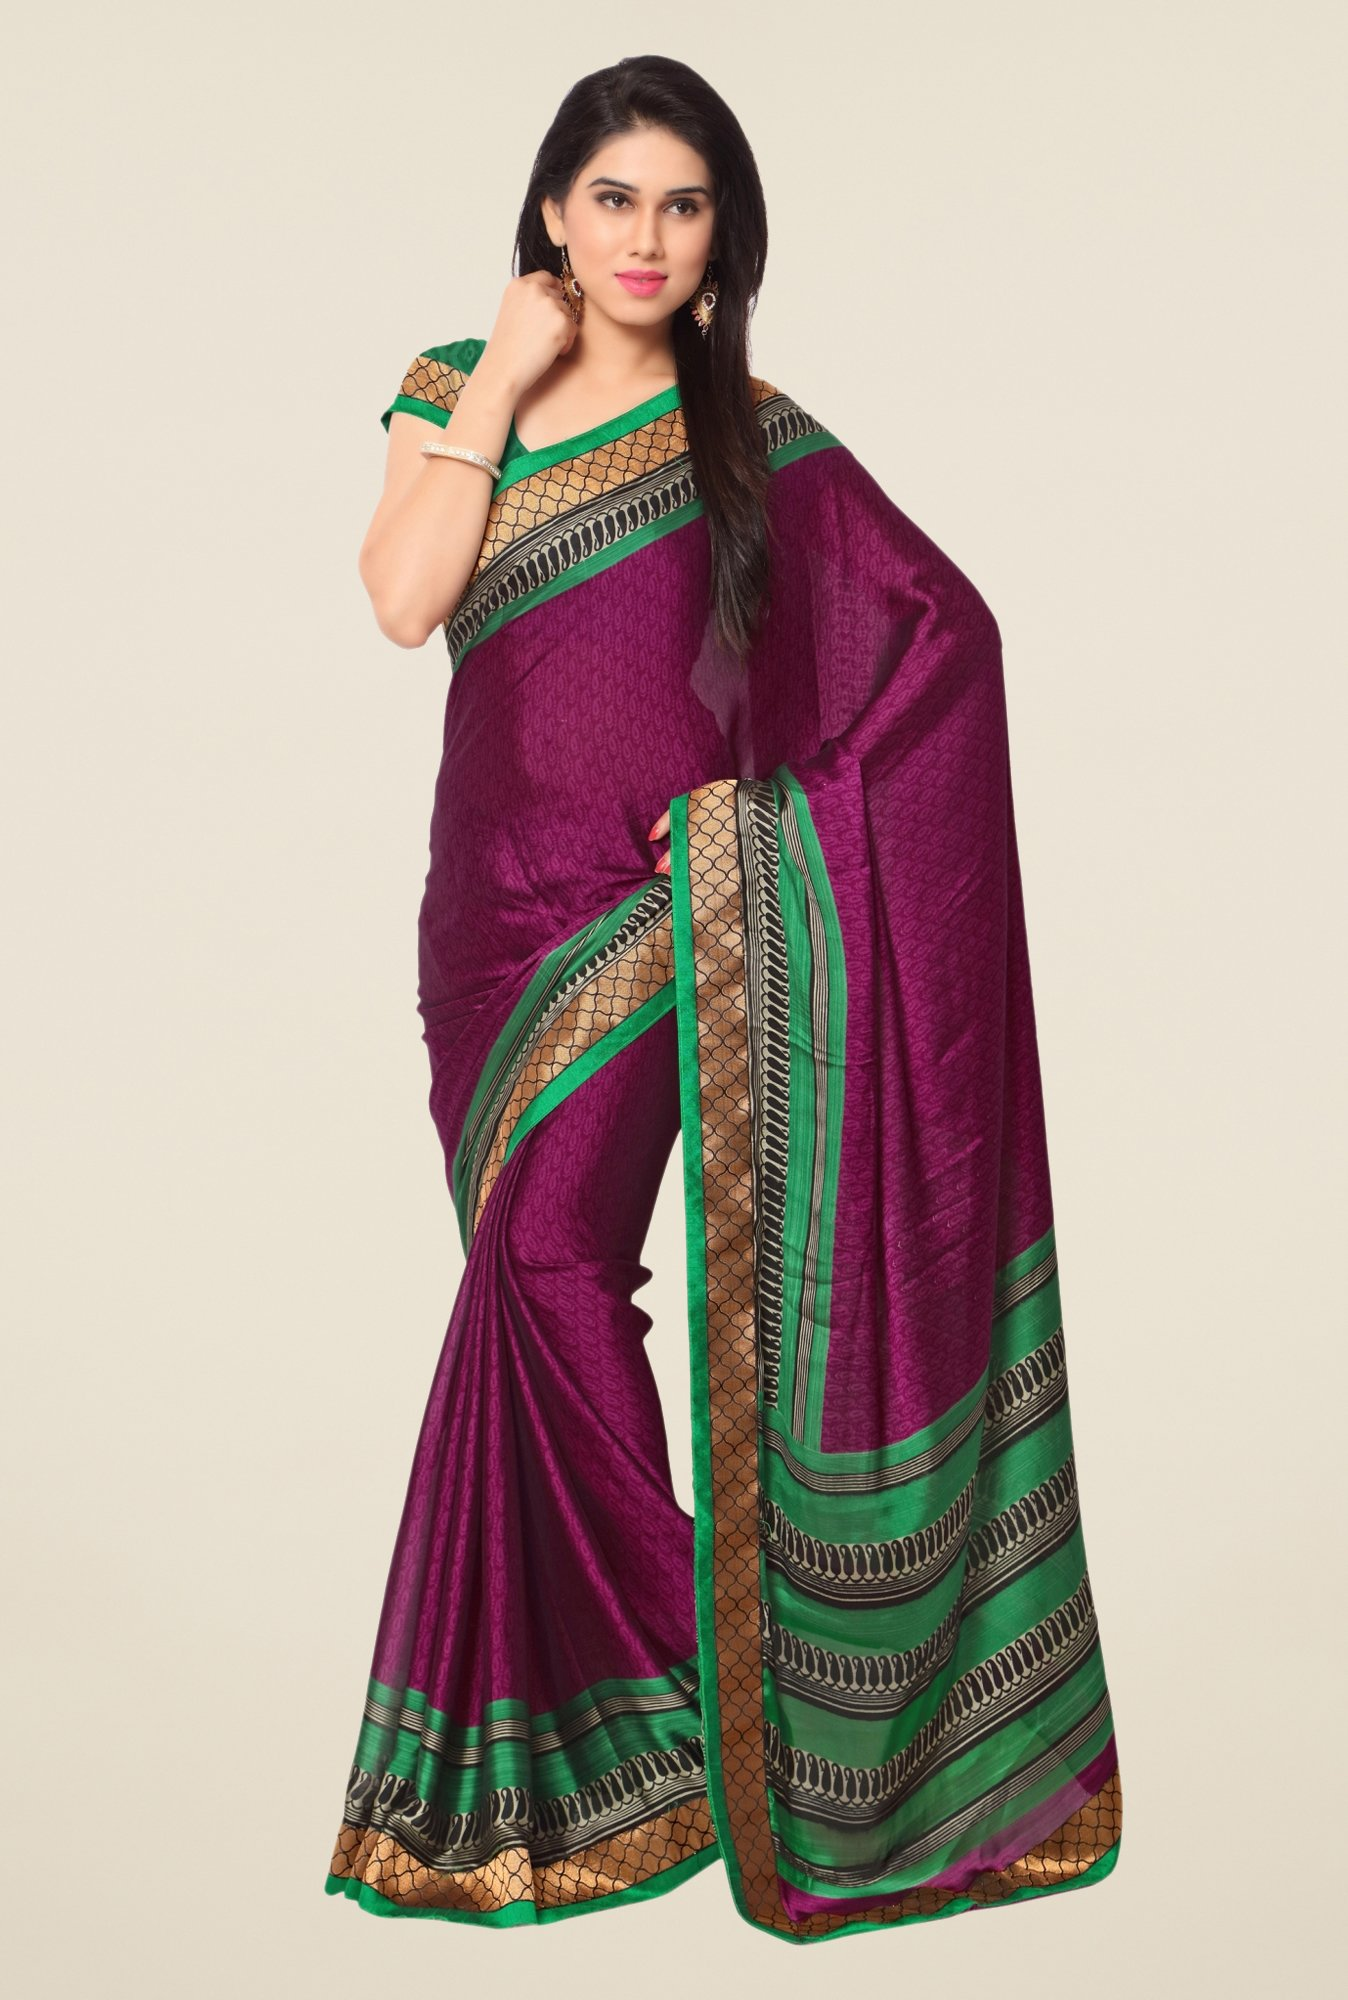 Triveni Purple Printed Faux Georgette Dry Clean Saree